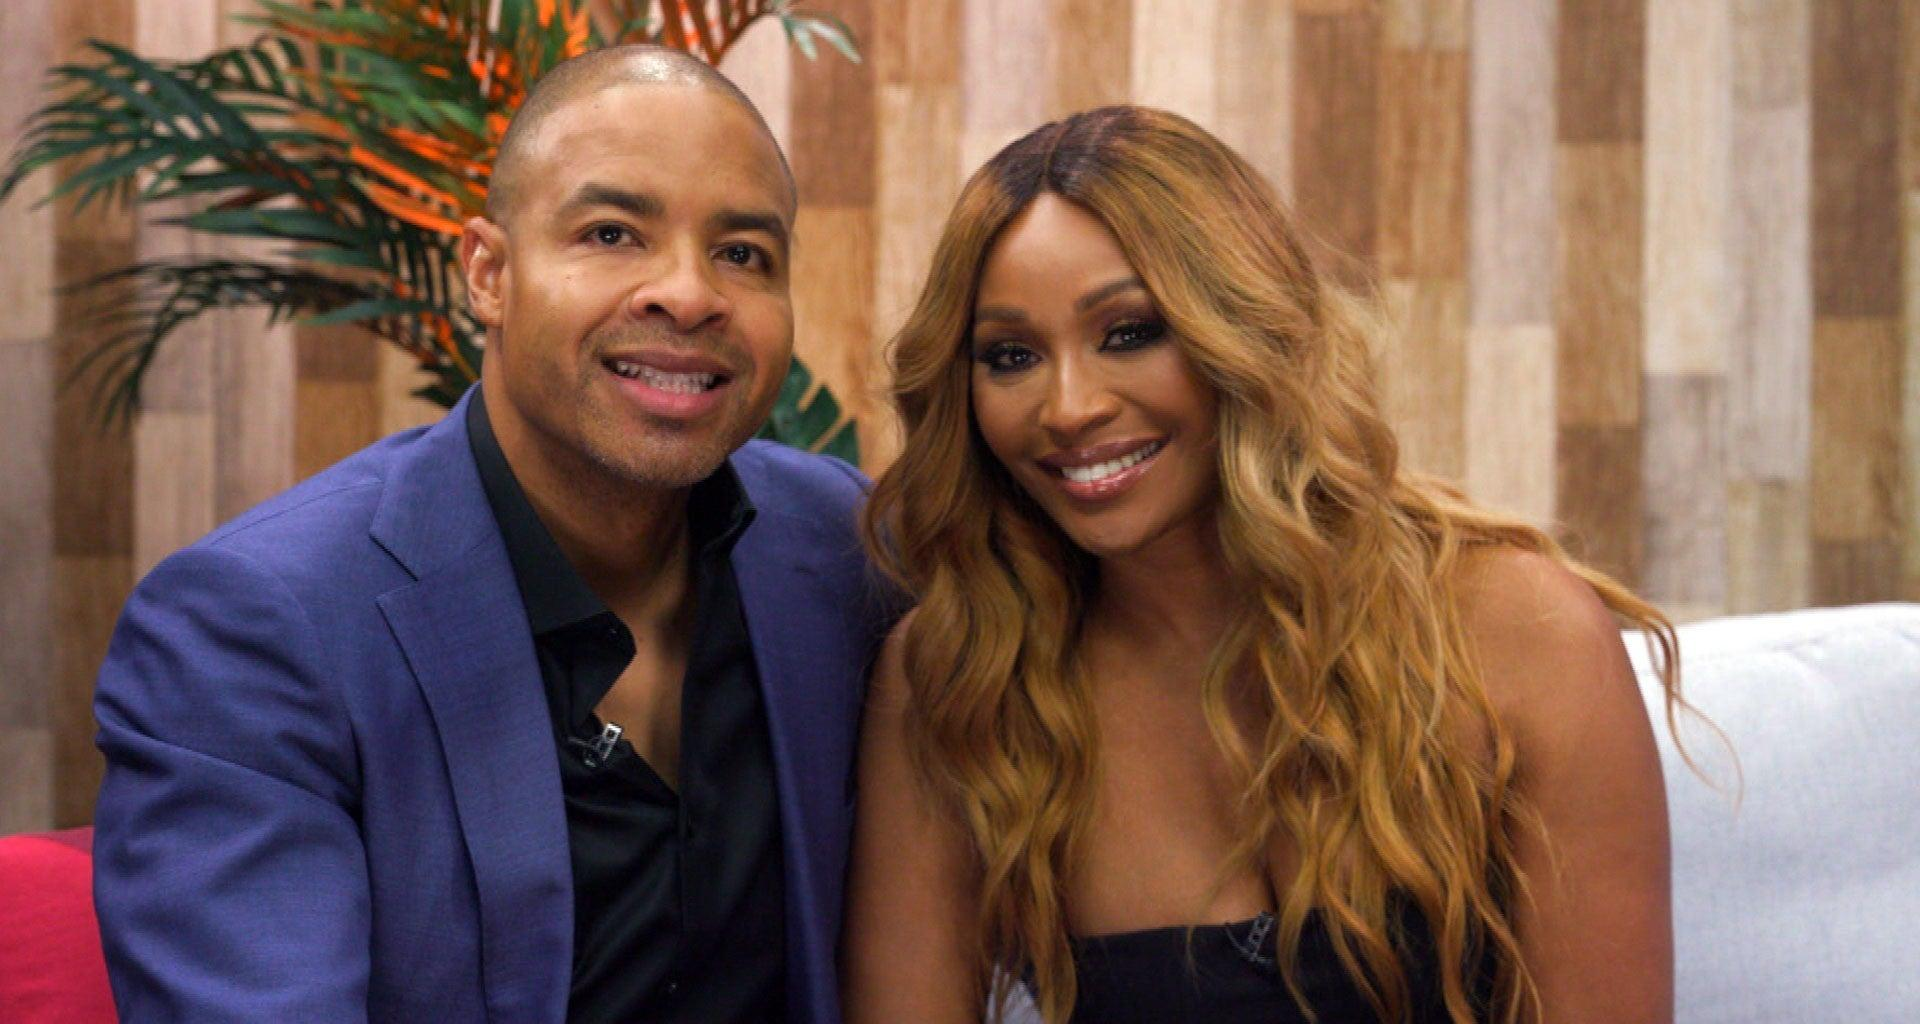 Cynthia Bailey Documents Her First Date With Mike Hill - See The Sweet Video